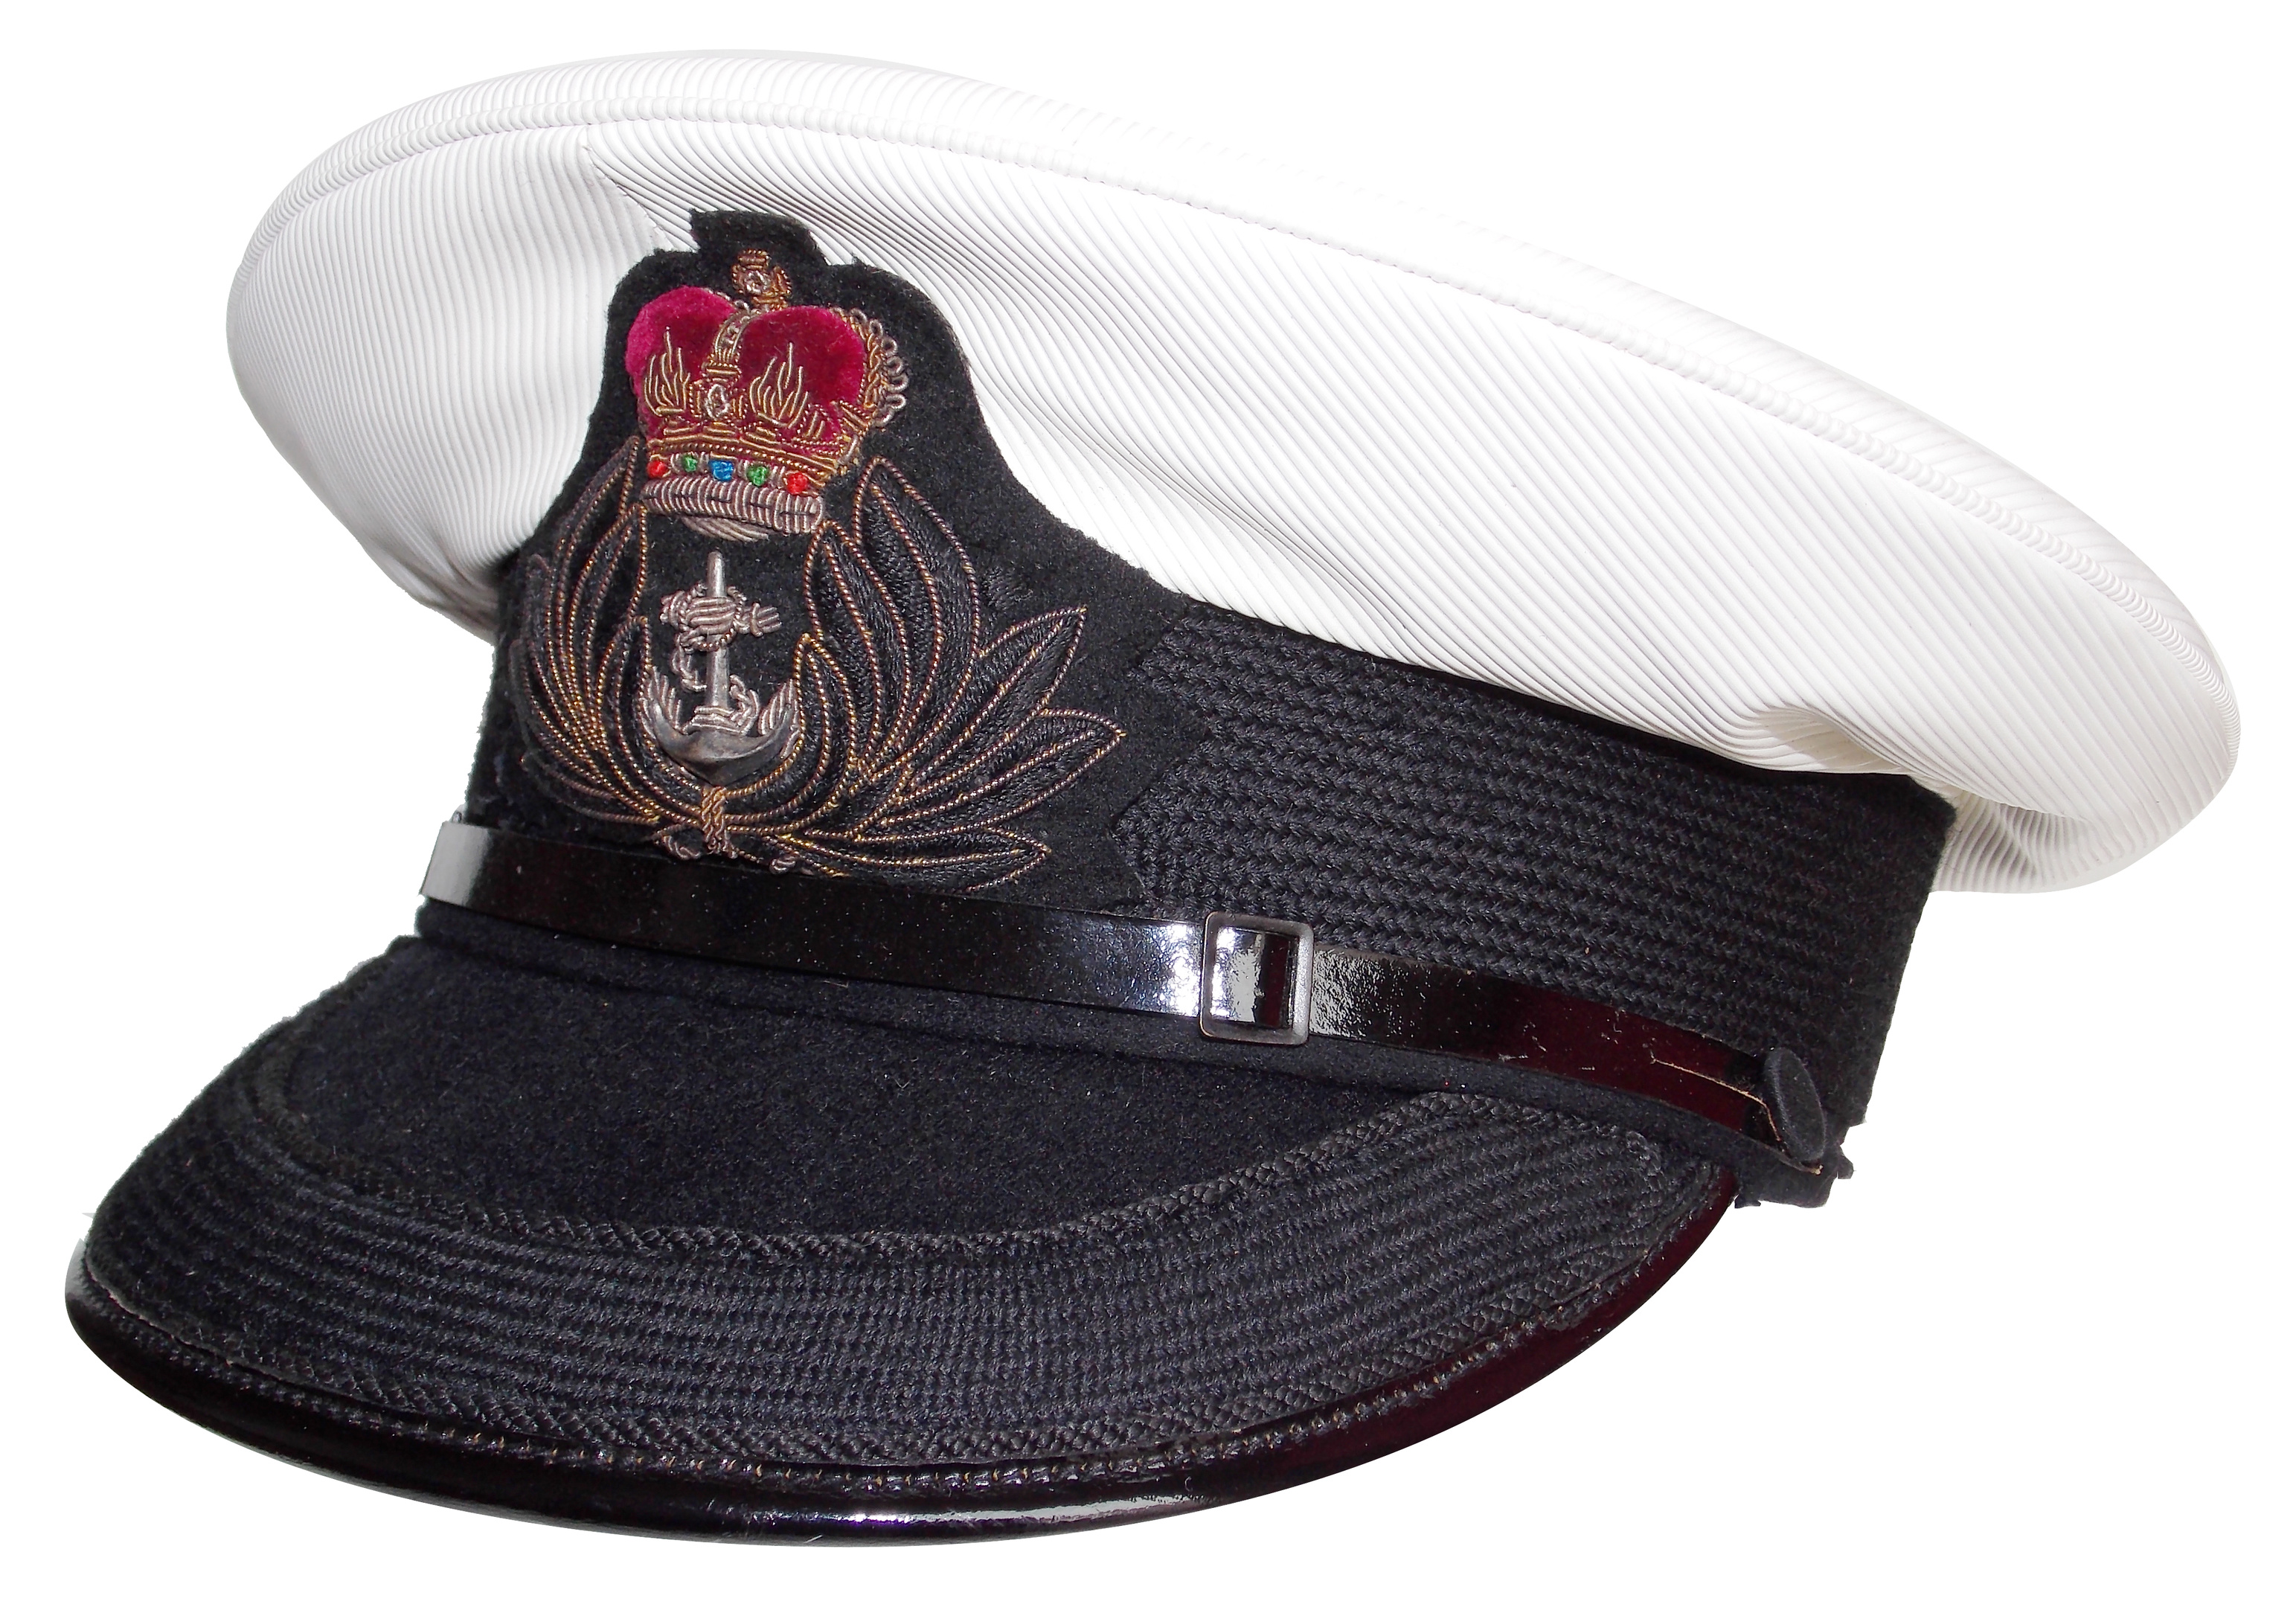 Pre 1974 British Royal Navy Chaplain's visor cap | Collectors Weekly